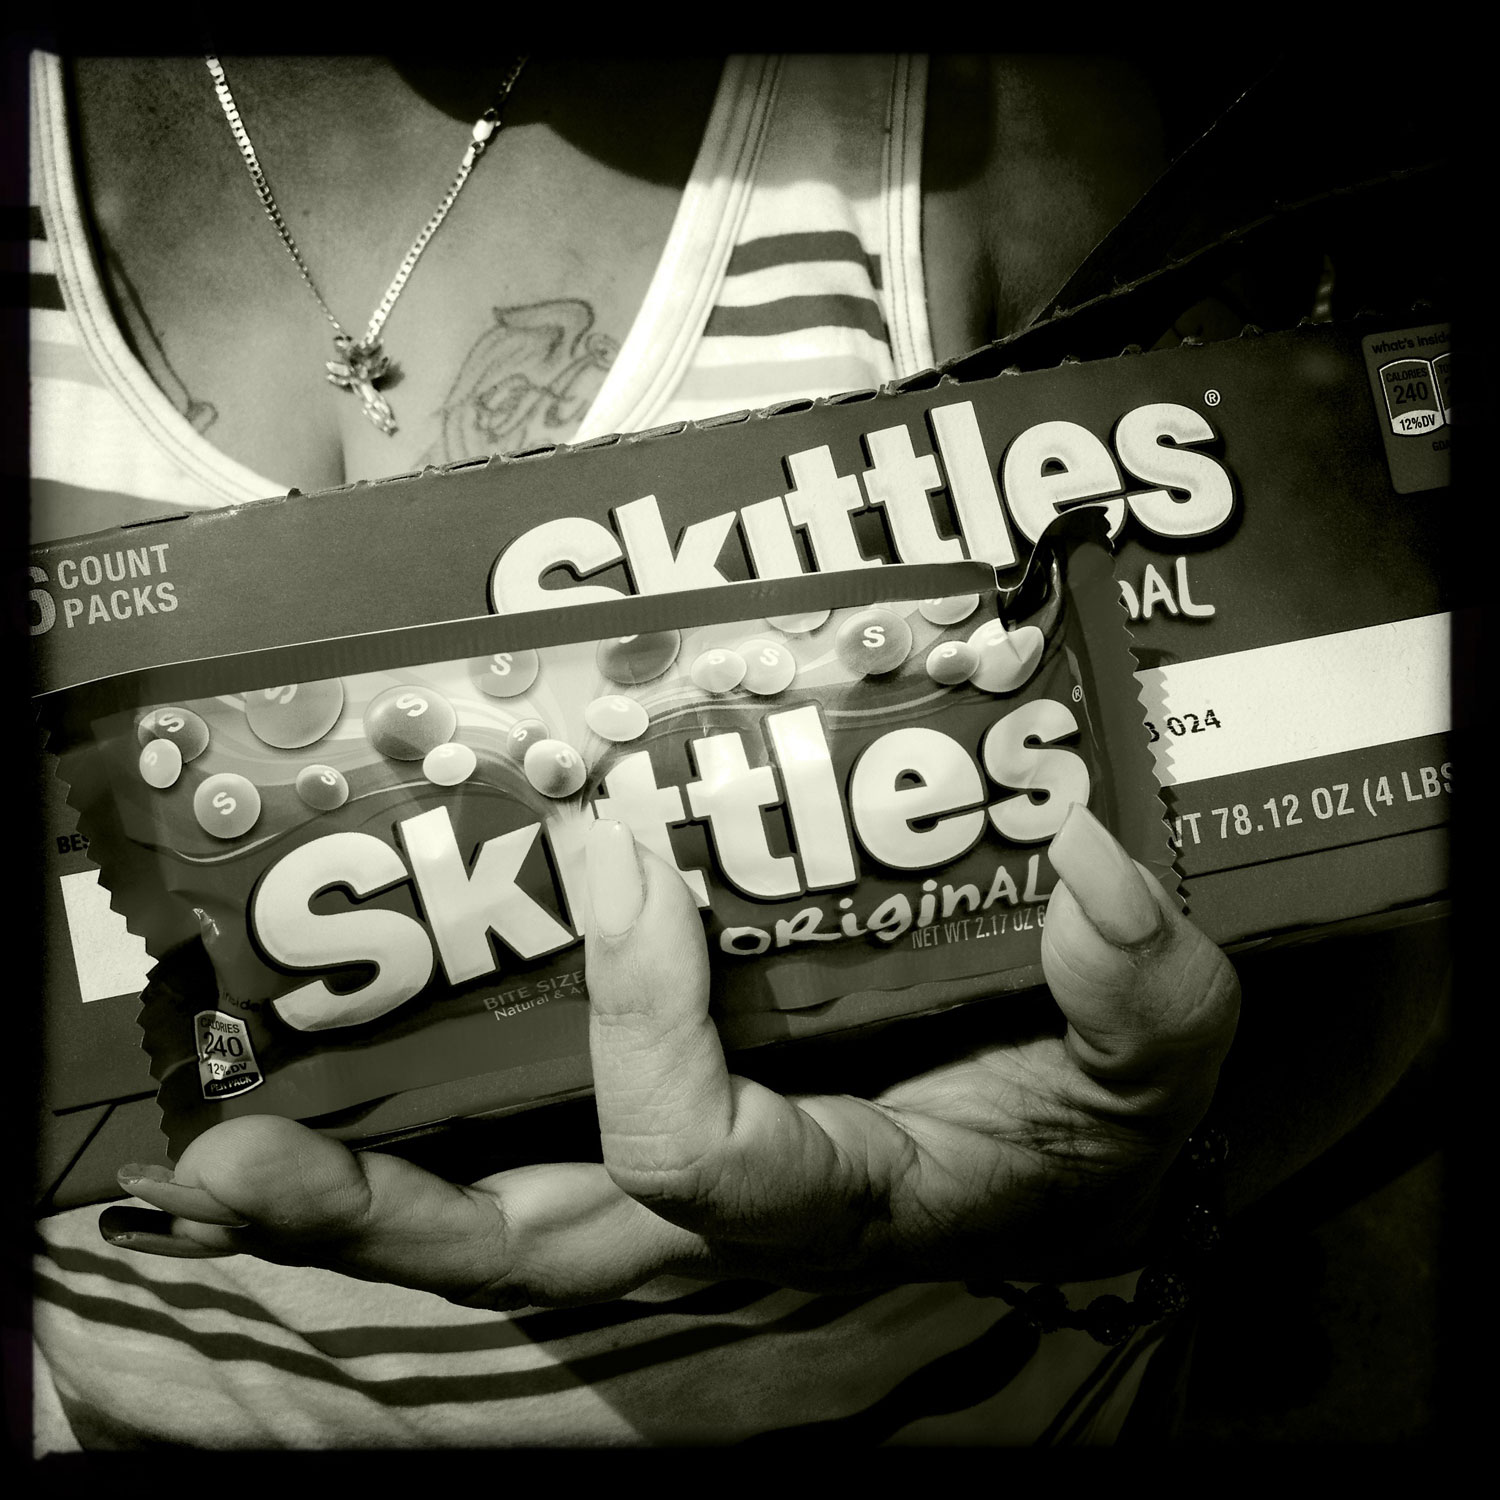 Skittles for sale at the Bayside Amphitheater rally, Miami, FL, April 1, 2012